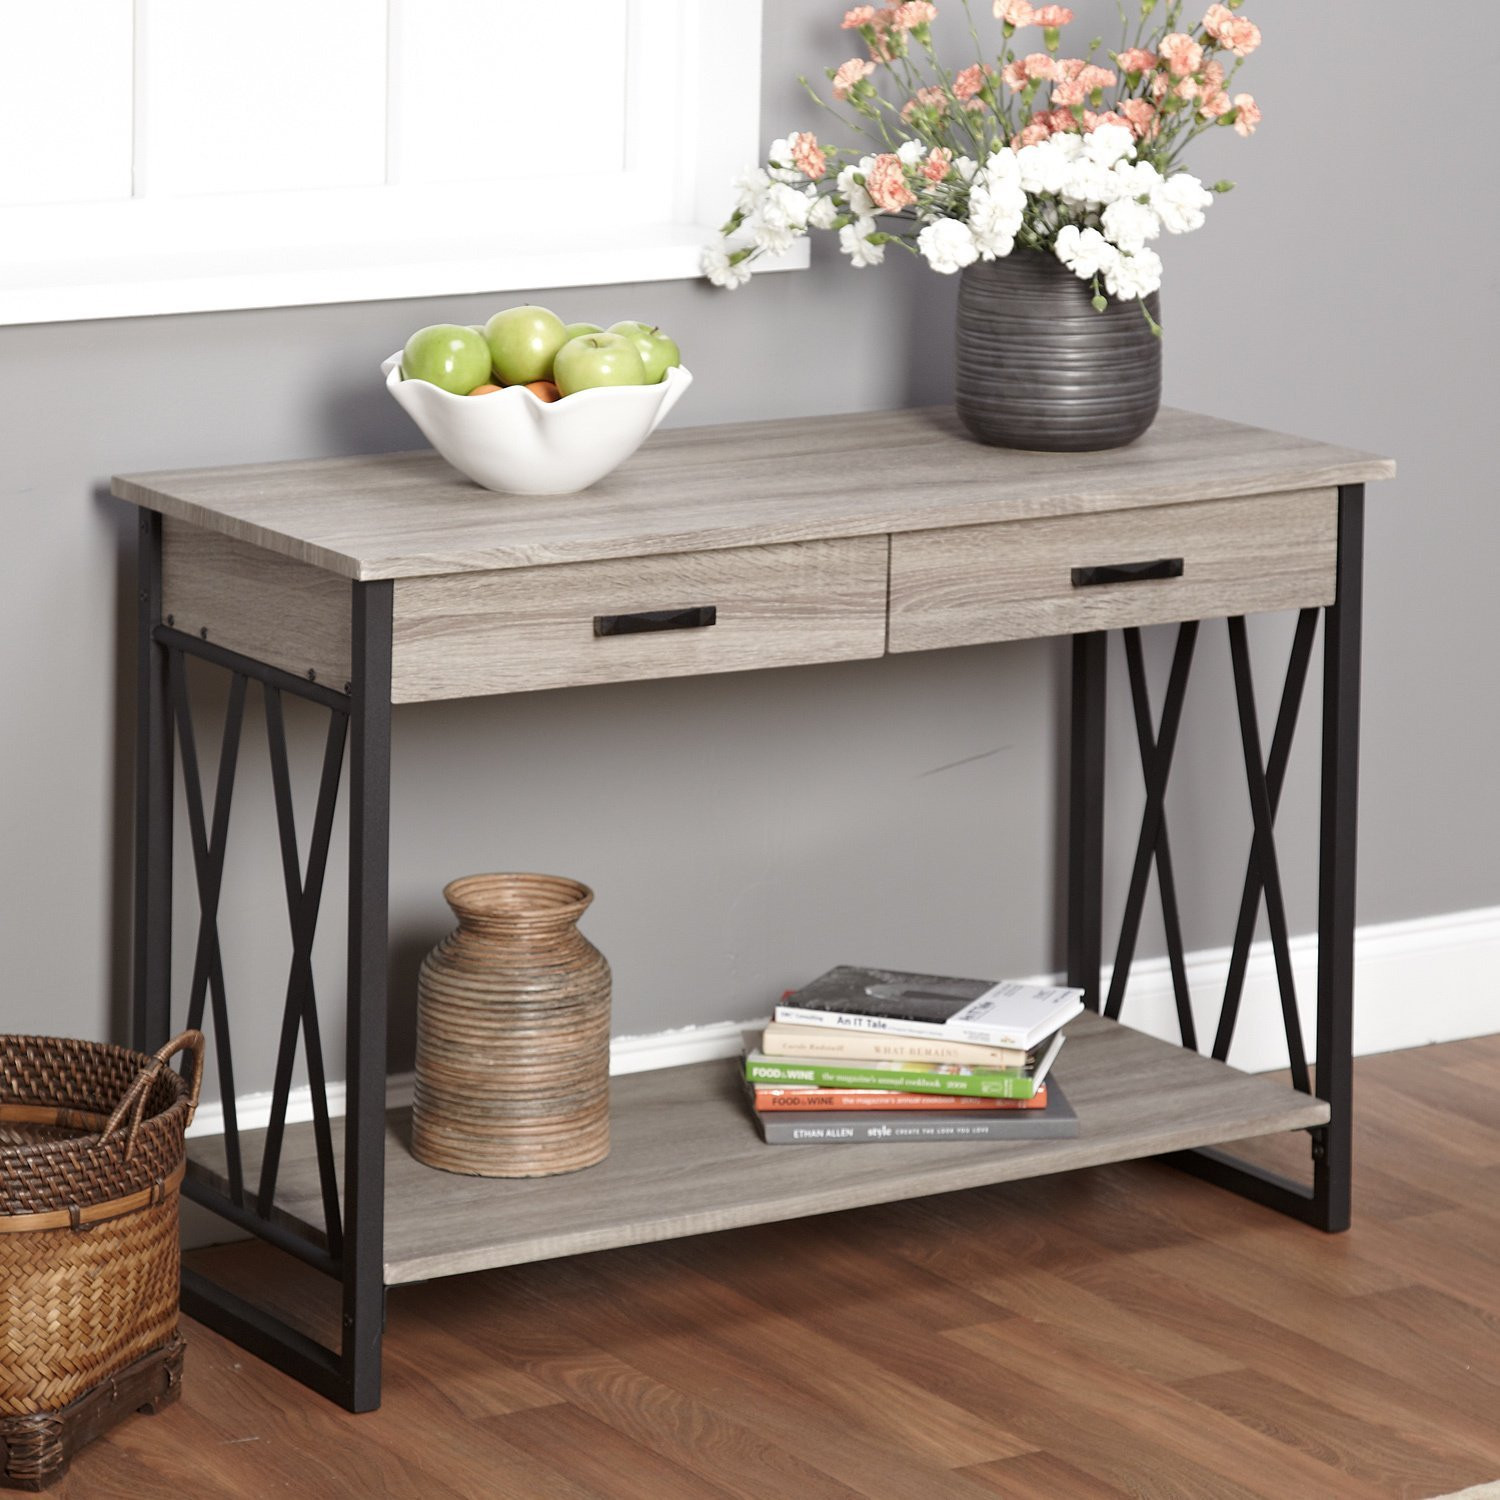 Best ideas about Entryway Console Table . Save or Pin Console Table Entryway bine — STABBEDINBACK Foyer Now.